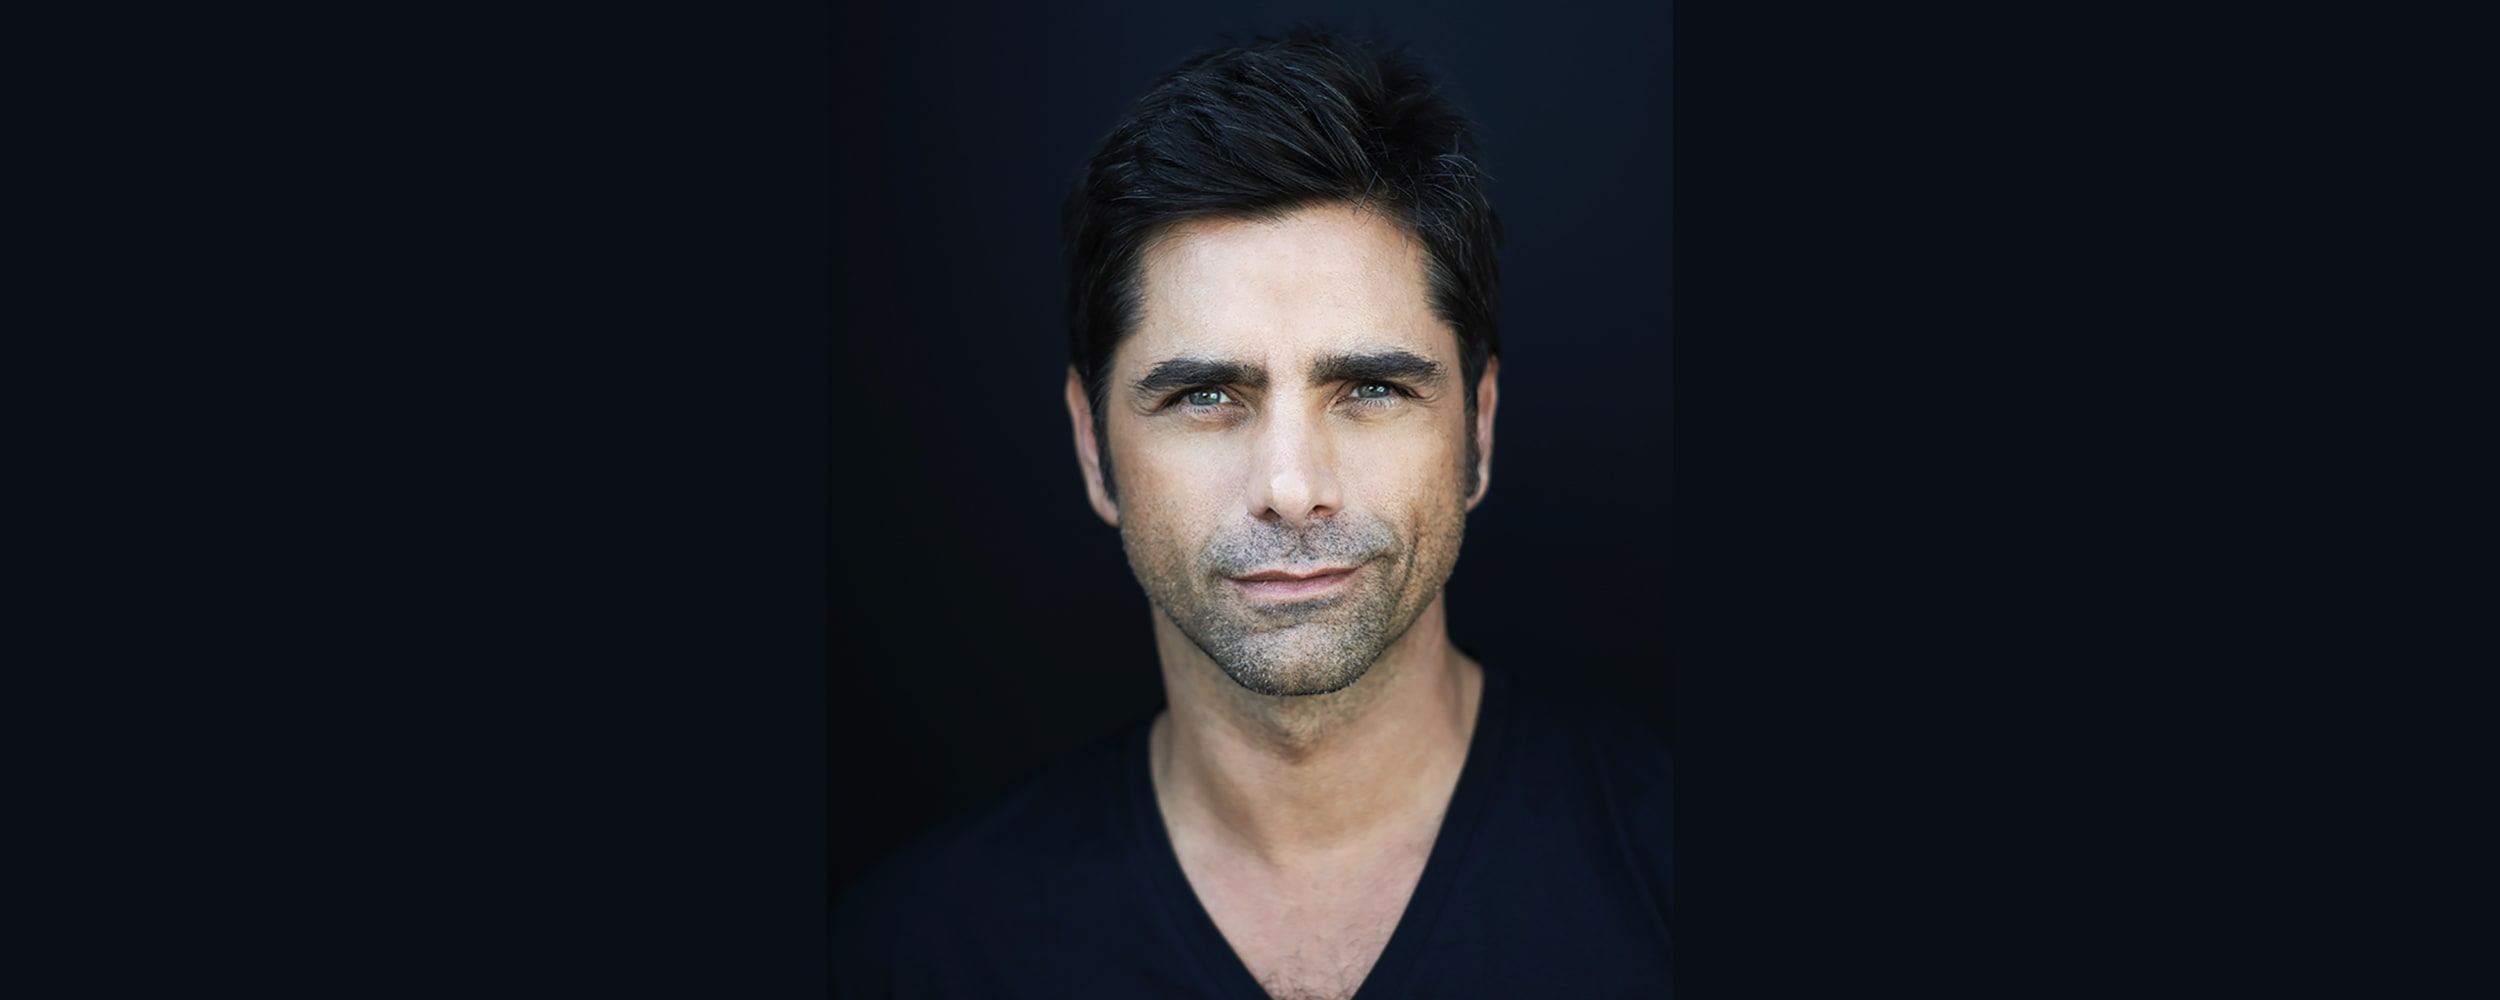 John Stamos to Star in David E. Kelley/Dean Lorey's 'Big Shot' for Disney+